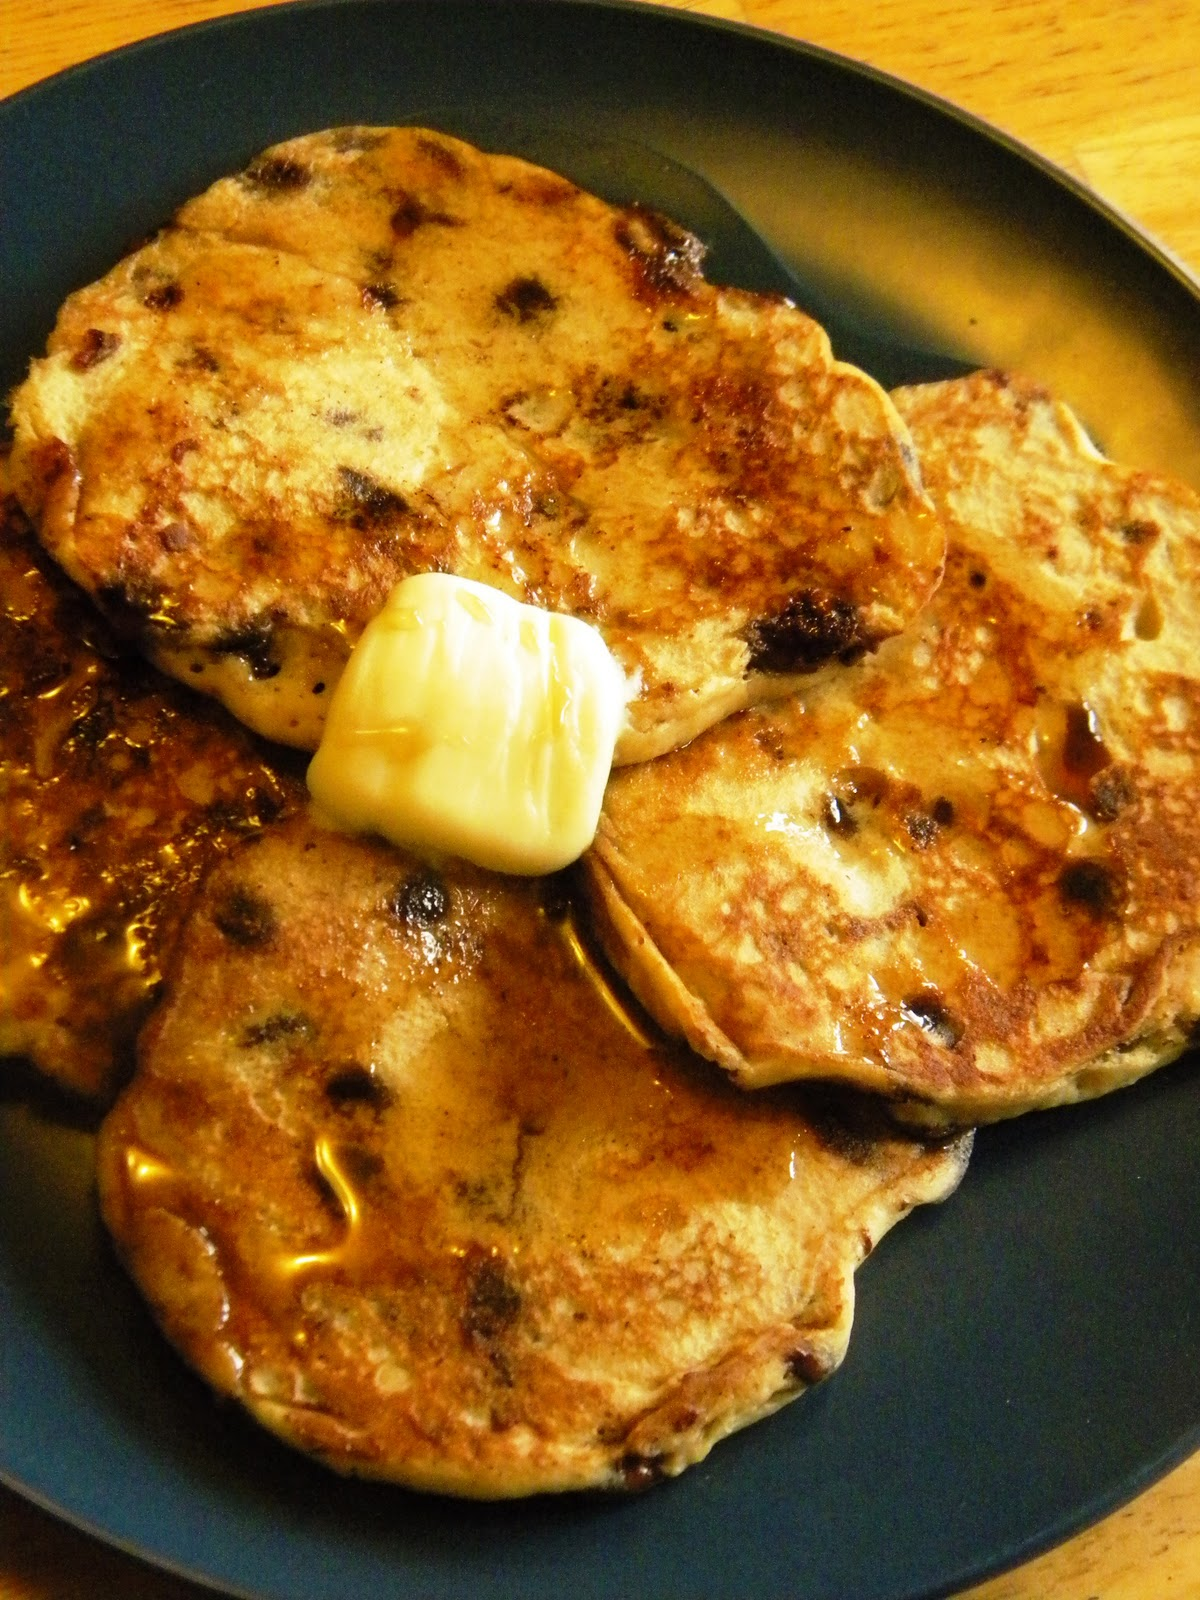 ... Crocker Project : Vegan Whole Wheat Banana & Chocolate Chip Pancakes